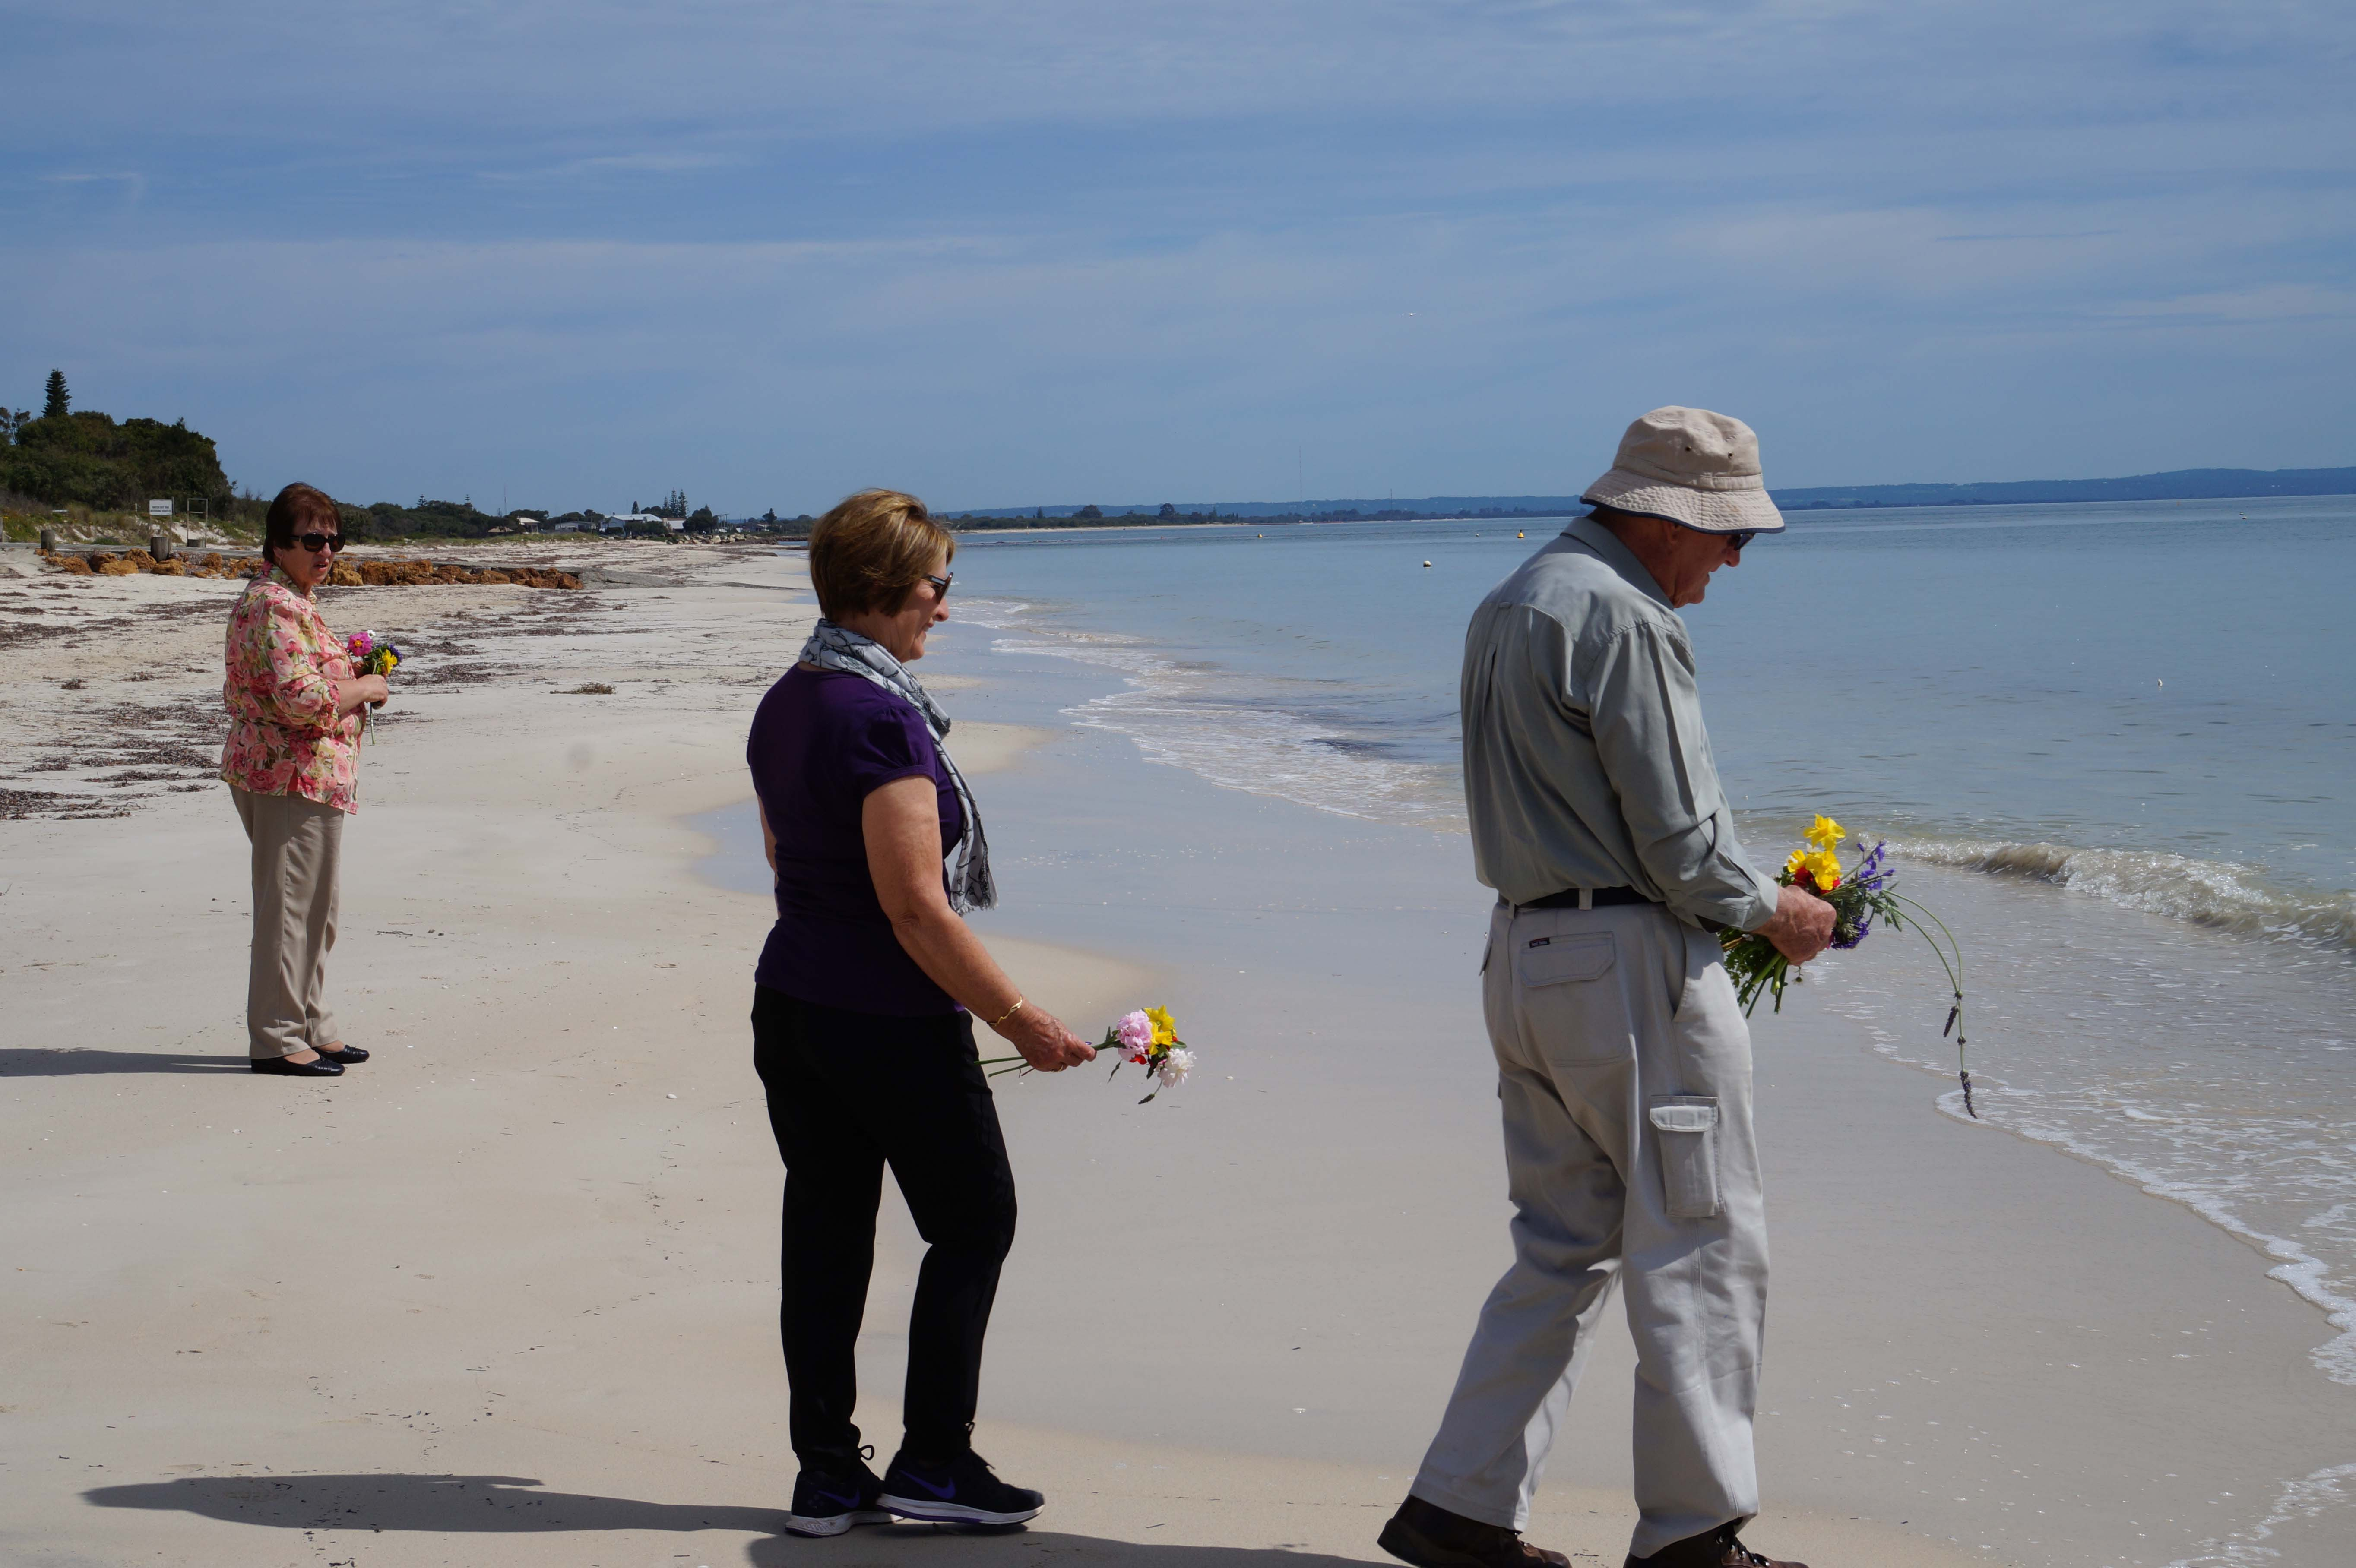 2Priscilla Smith, Bernie Morgan and Des Aitken about to throw flowers on the ocean_